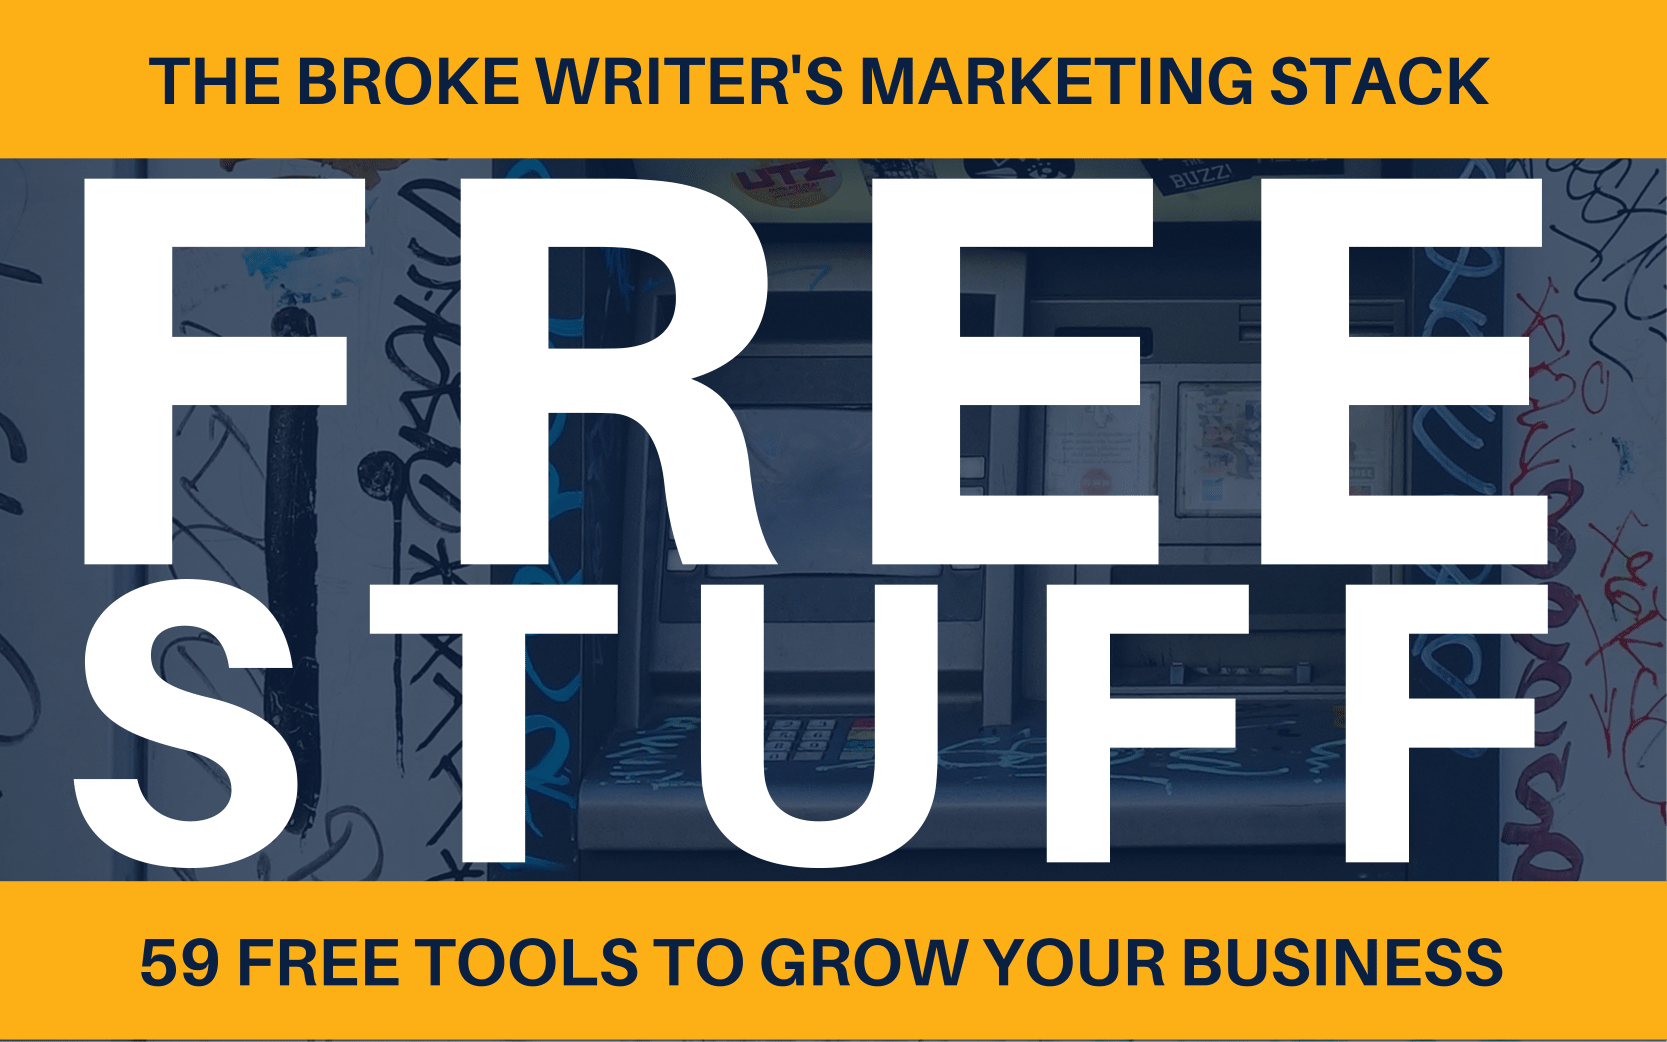 The Broke Writer's Marketing Stack